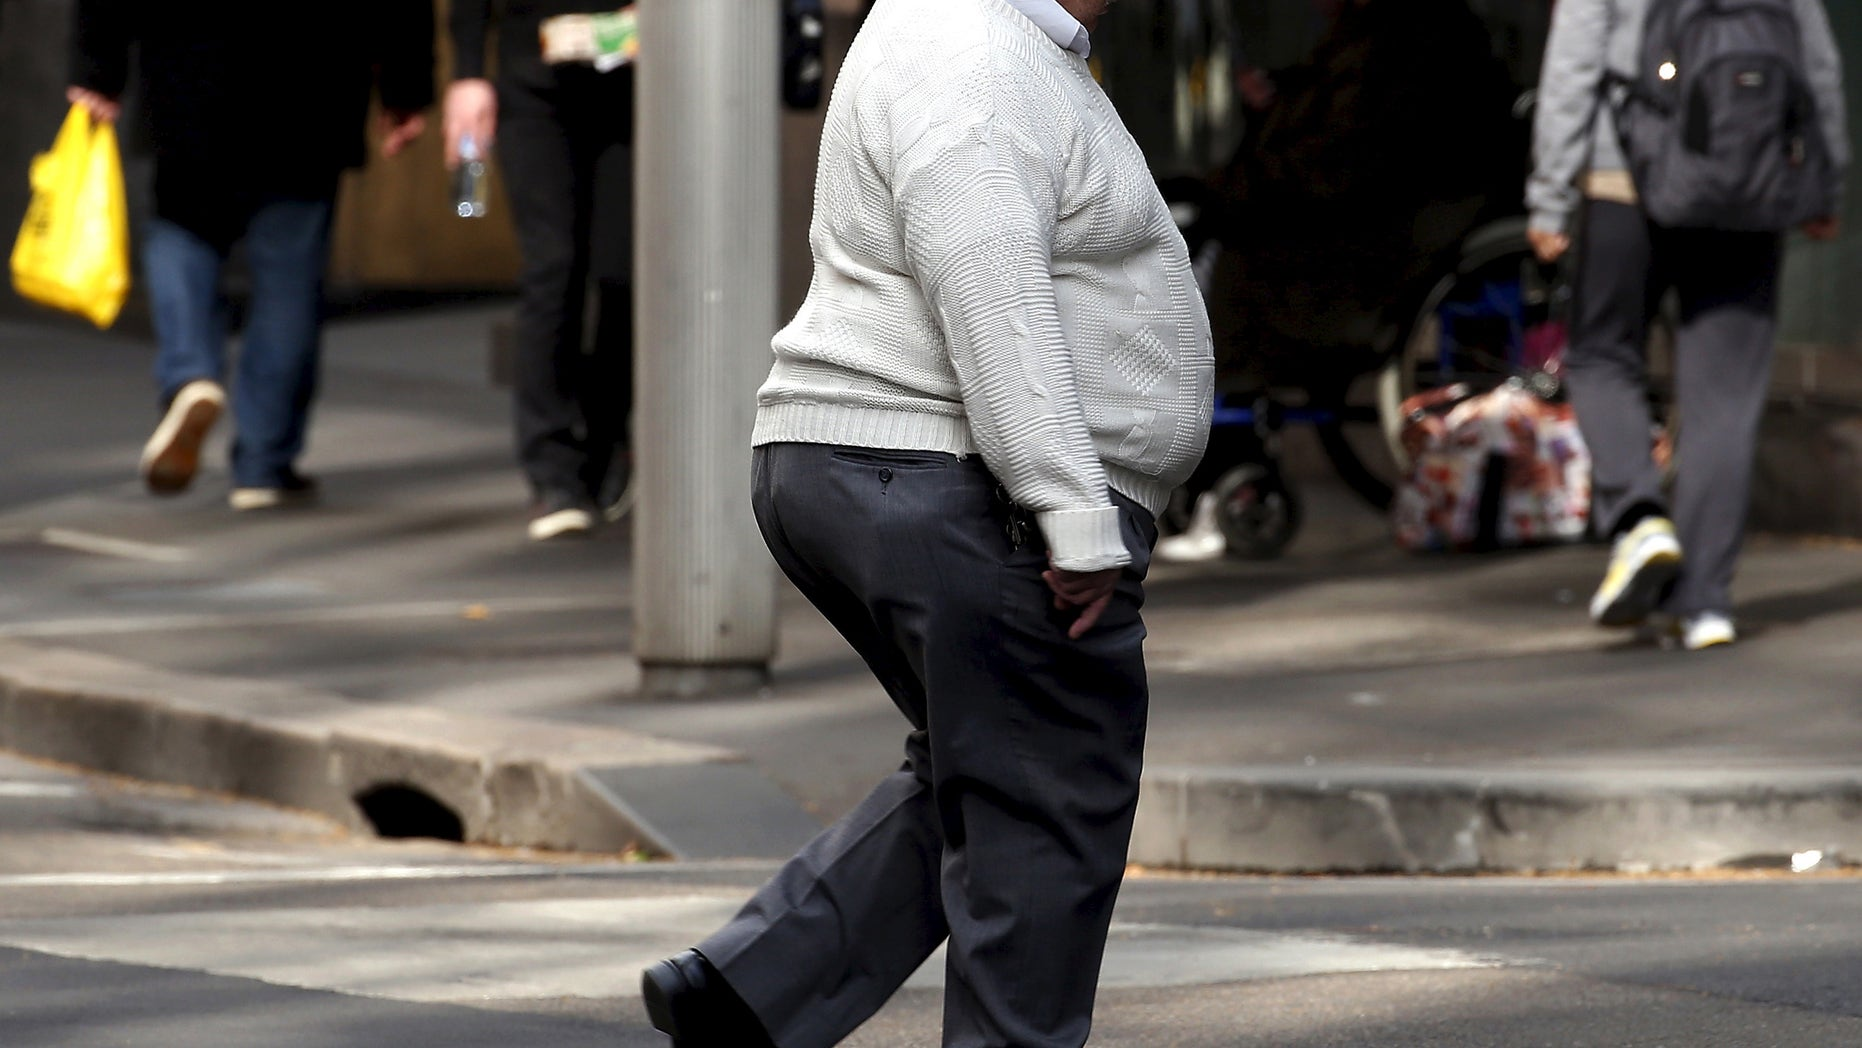 A man crosses a main road as pedestrians carrying food walk along the footpath in central Sydney, Australia, August 12, 2015. Fast food may be falling out of favour in many countries around the world but companies are making healthy profits and boldly innovating in the unlikely market of Australia. Contrary to stereotypes of a beach-going community of fitness fanatics, official data out this week showed 40 percent of Australian adults are dangerously obese and have a poor diet that includes lashings of fast food. That makes Australia a hotbed for innovation by companies including homegrown firm Domino's Pizza Enterprises Ltd, McDonald's Corp and Yum! Brands Inc's, KFC and Pizza Hut as they struggle to win over health-conscious diners in other countries. Picture taken August 12, 2015.    REUTERS/David Gray - RTX1O50L